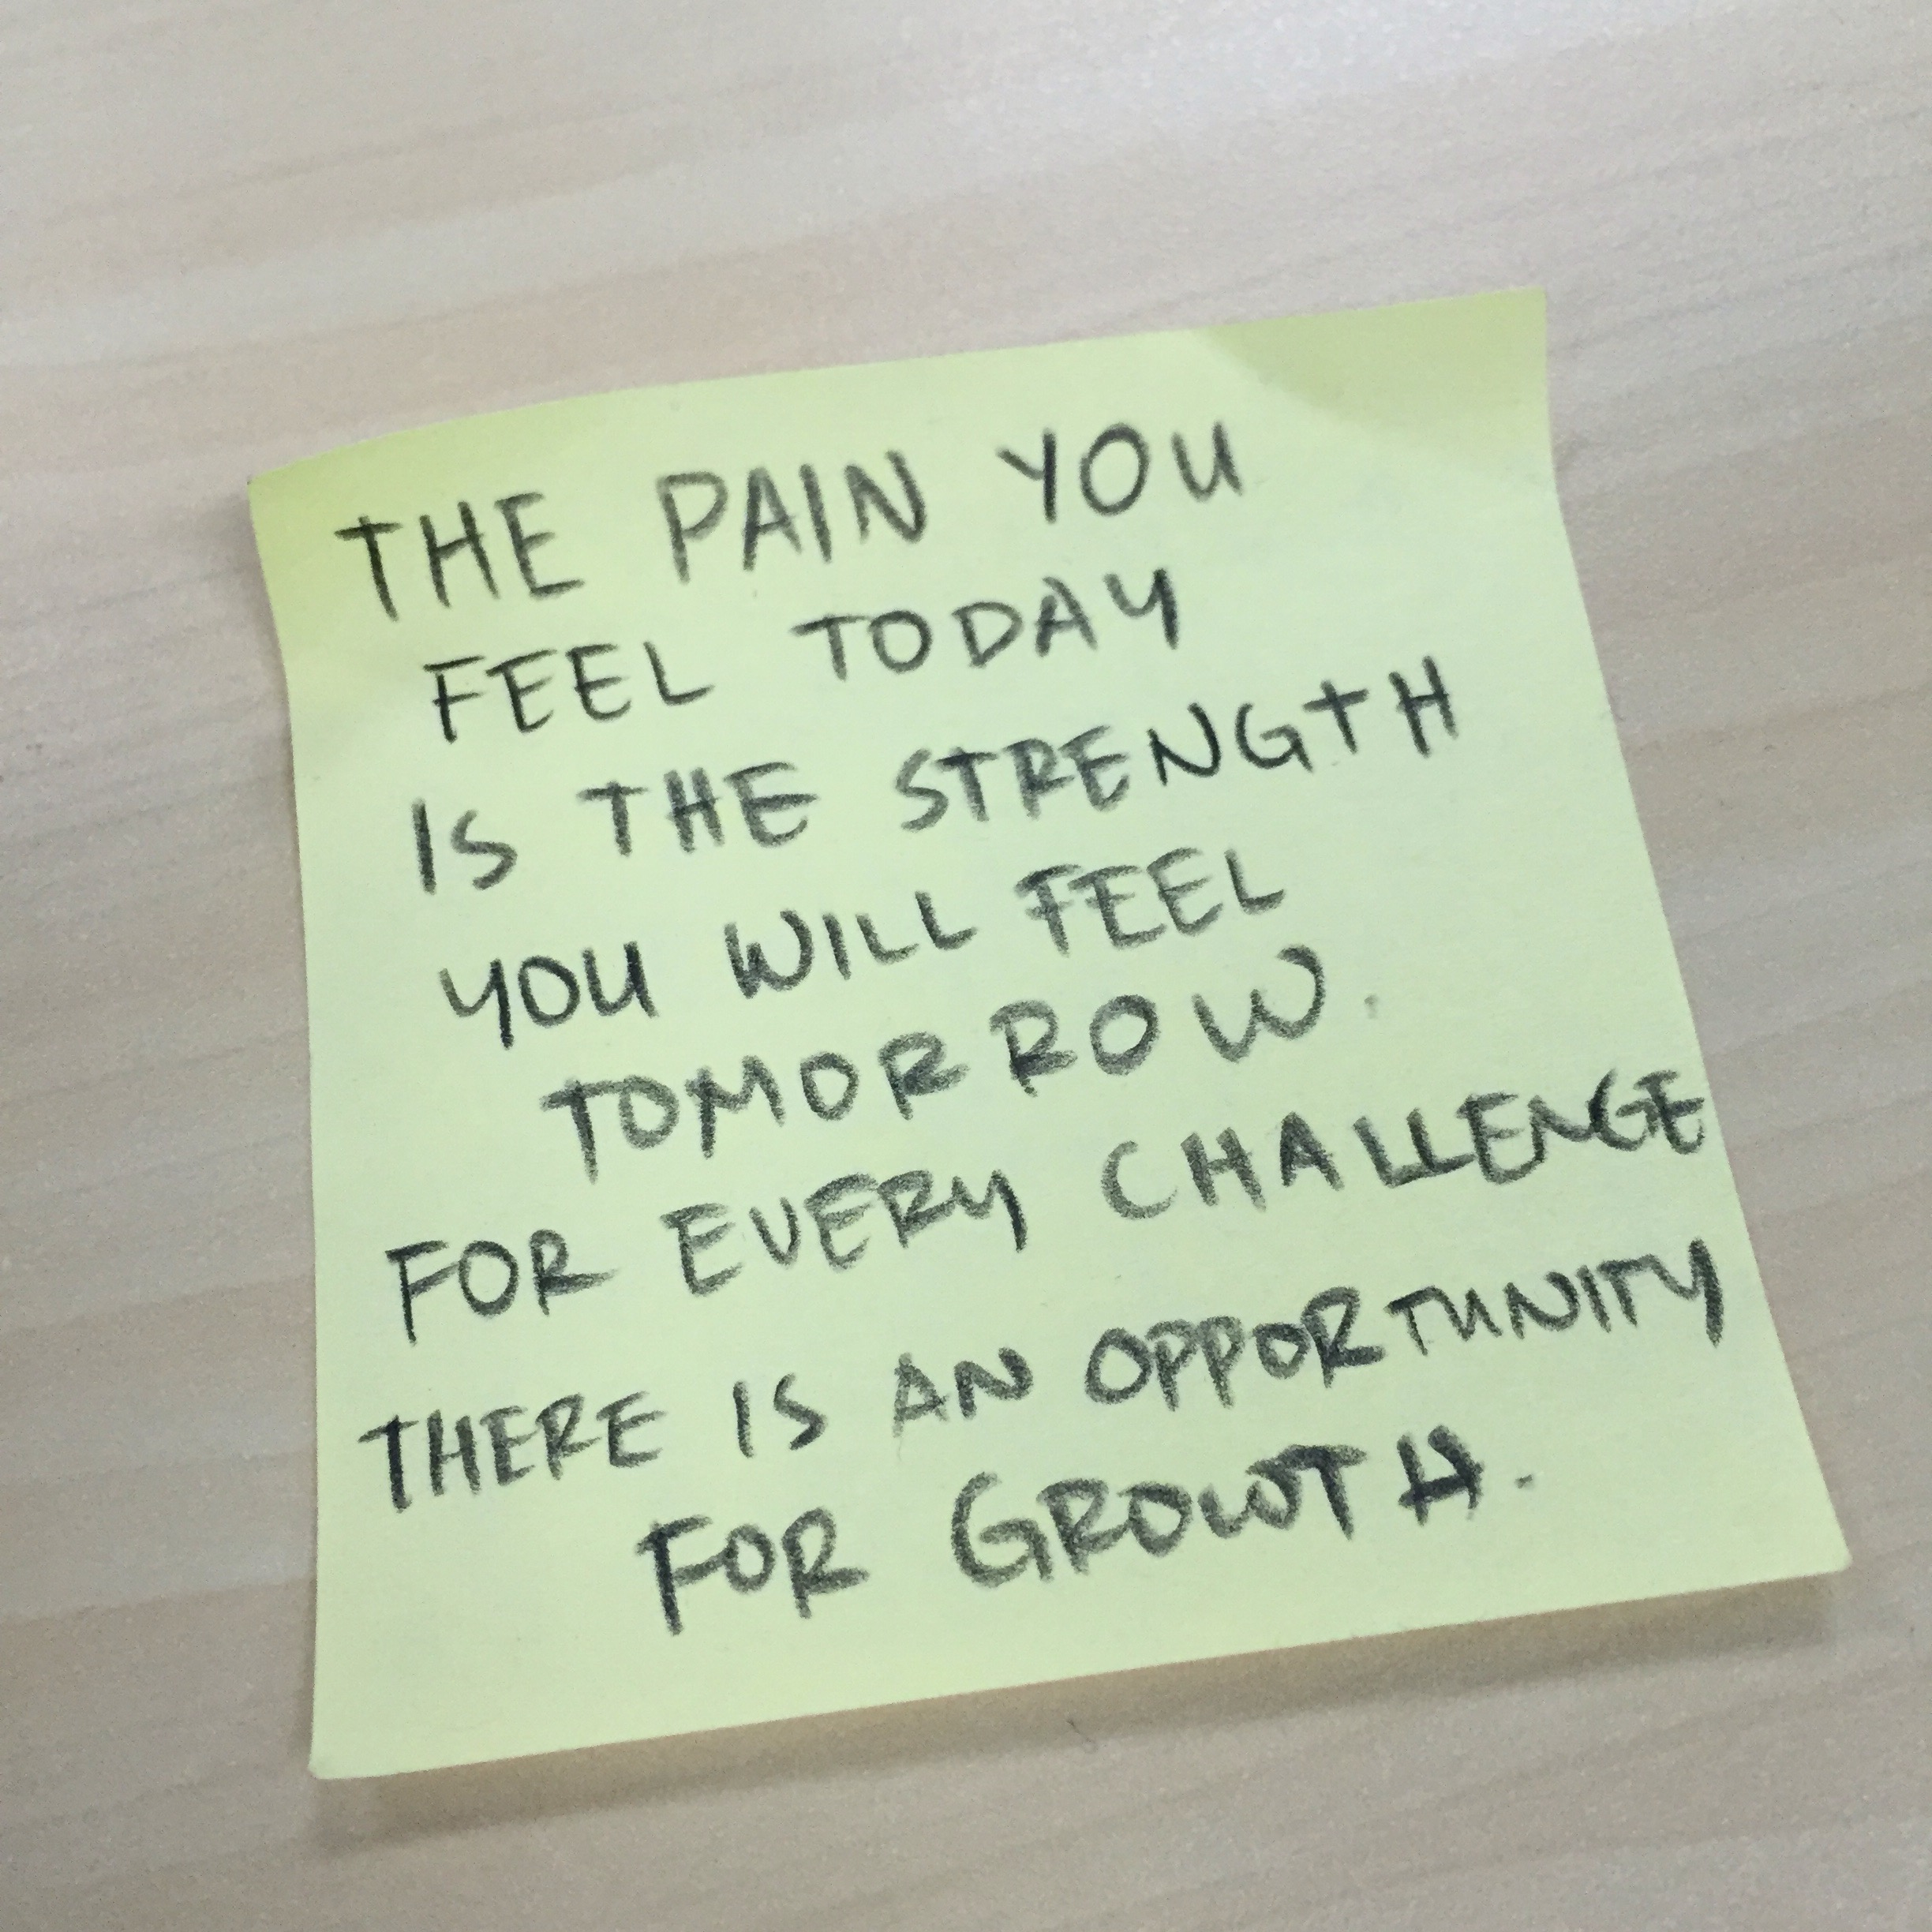 The pain you feel today is the strength you will feel tomorrow. For every challenge, there is an opportunity for growth.